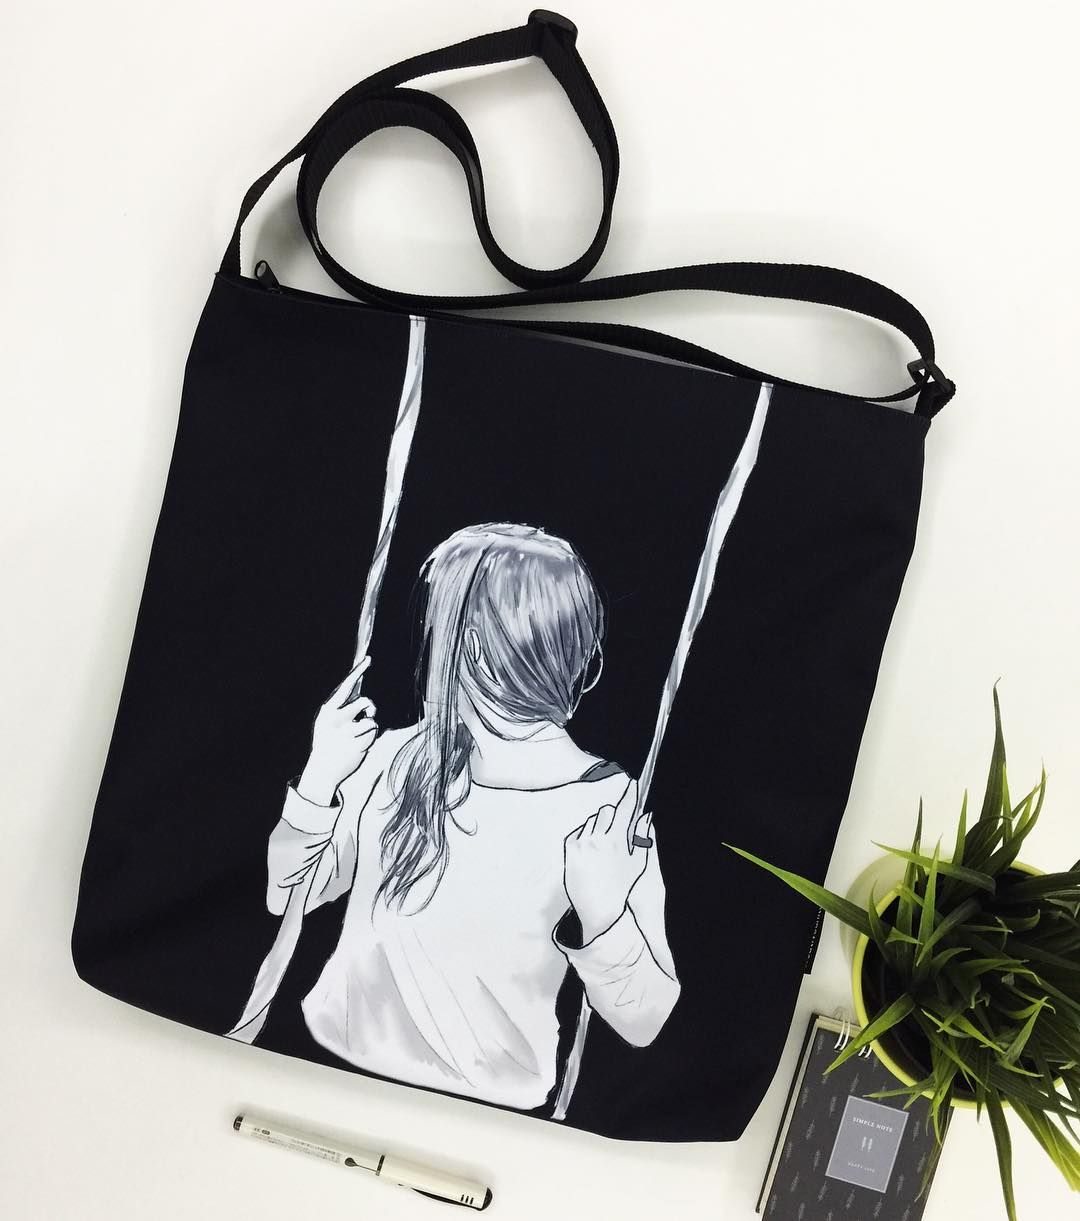 SWINGS. Amazing illustration by @aimeeee02 on Creative United. Grab this illustration on the new sling #totebag here: http://ift.tt/2g3ZQ6V . Also available on #pillow #pouch #slingbag and #mug. . Click link in bio @creativeunited.my to visit Creative United Malaysia's largest art marketplace. Follow us for daily dose of cool artworks by Malaysian indie artists and designers. Showcase and sell your works as products on Creative United without any cost. Join us! . #creativeunitedmy…